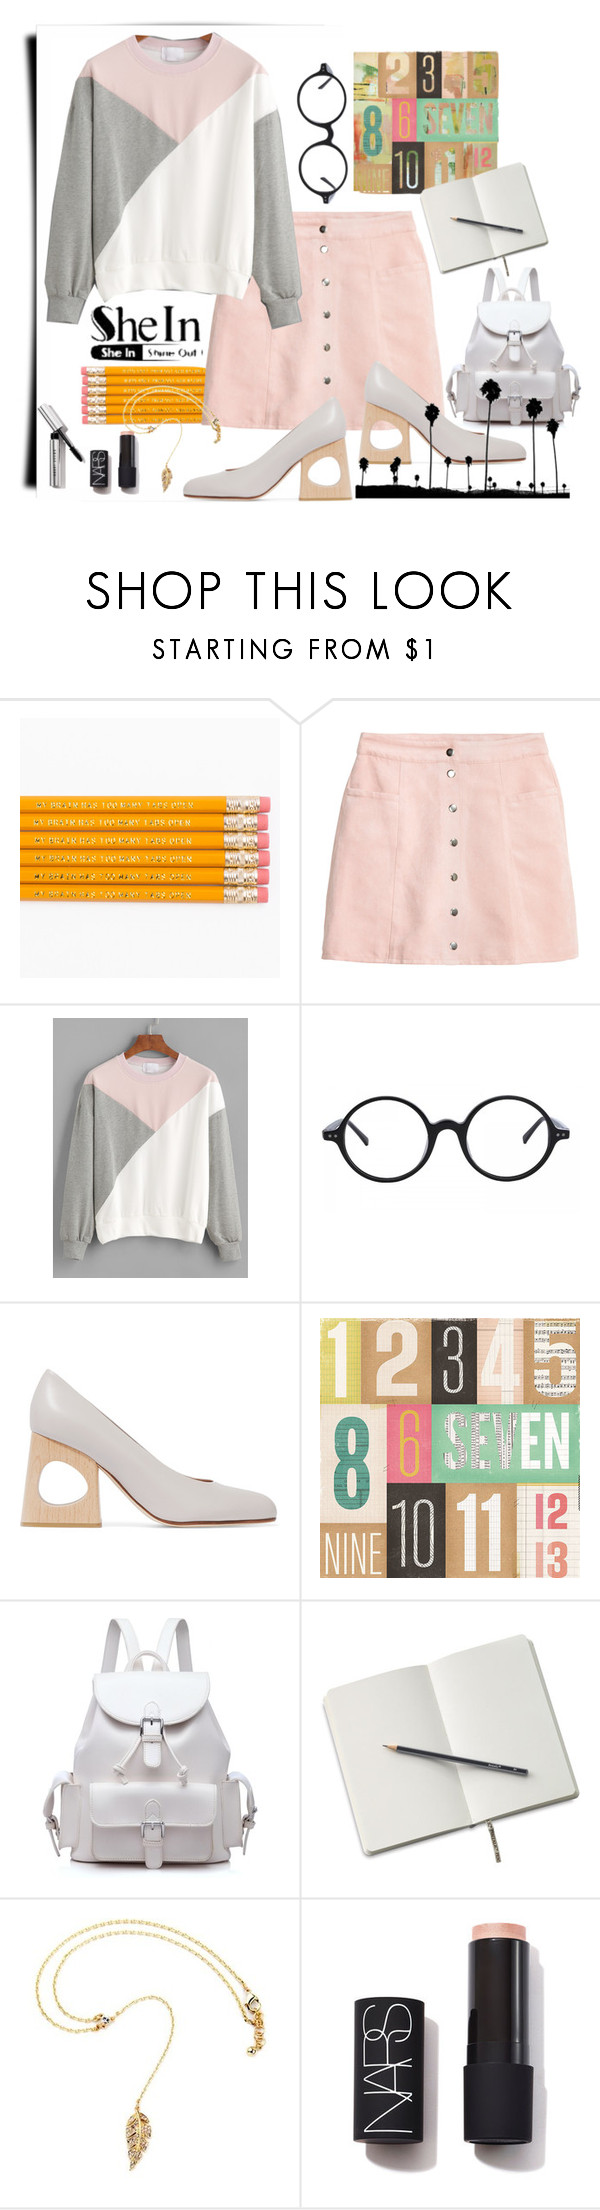 """Untitled #161"" by aurora8918 ❤ liked on Polyvore featuring H&M, Marni, NARS Cosmetics and Bobbi Brown Cosmetics"